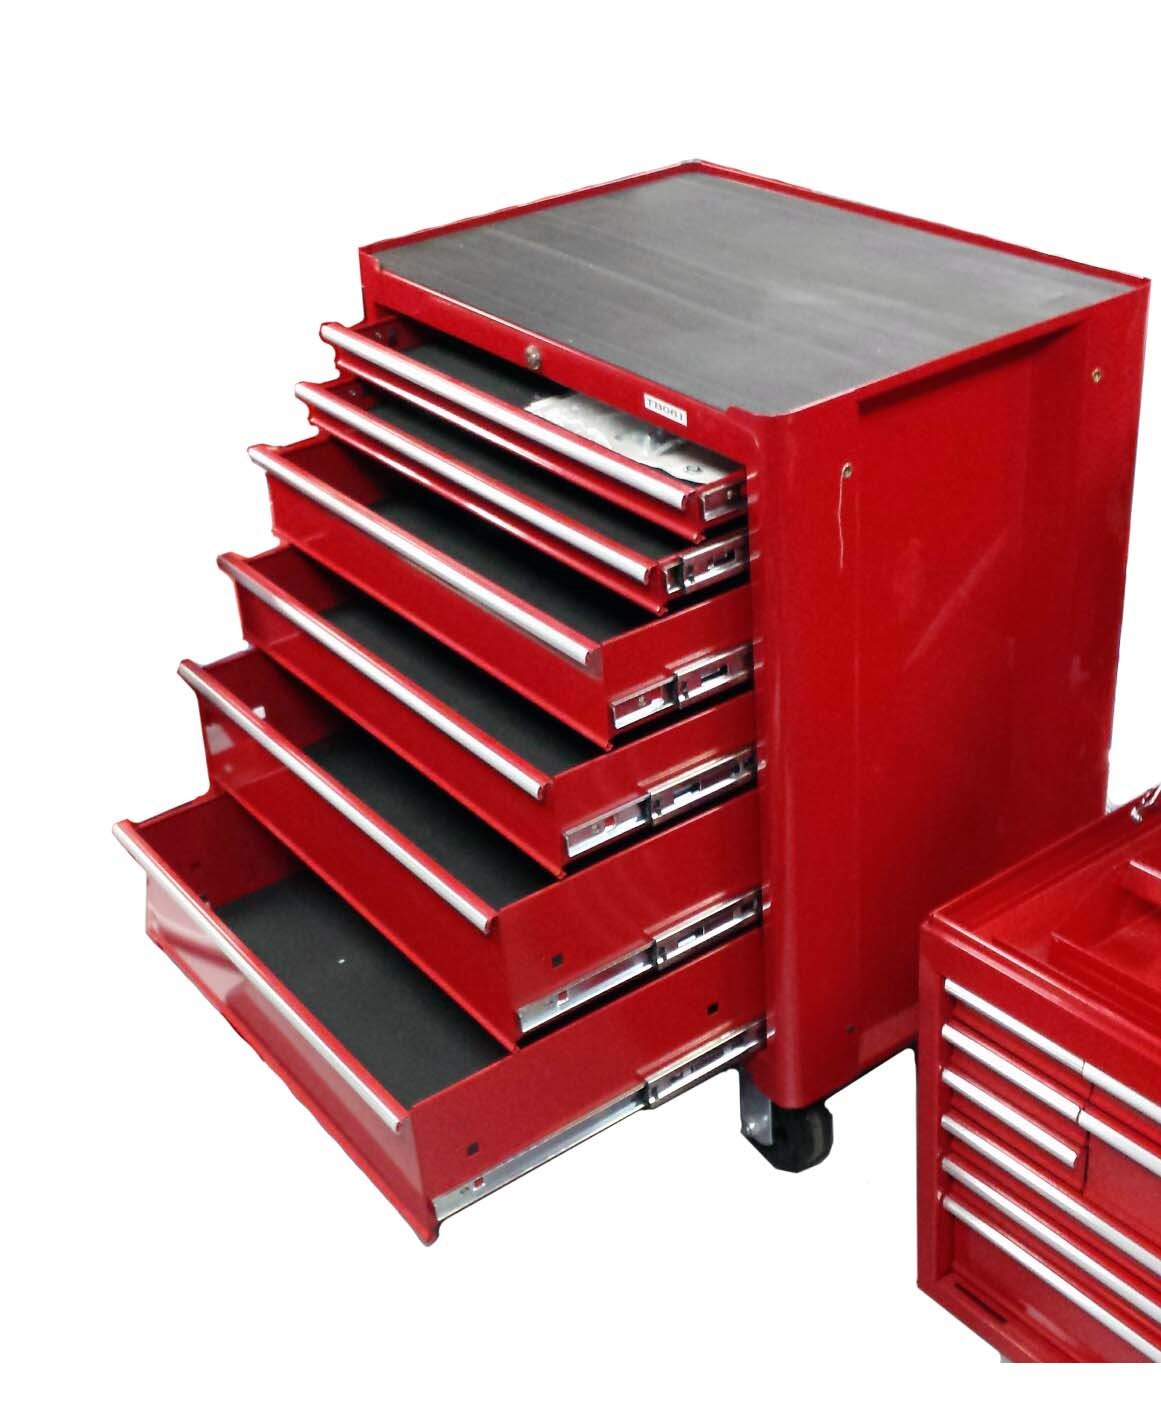 Toolzone 6 Drawer Hd Roller Bearing Tool Cabinet